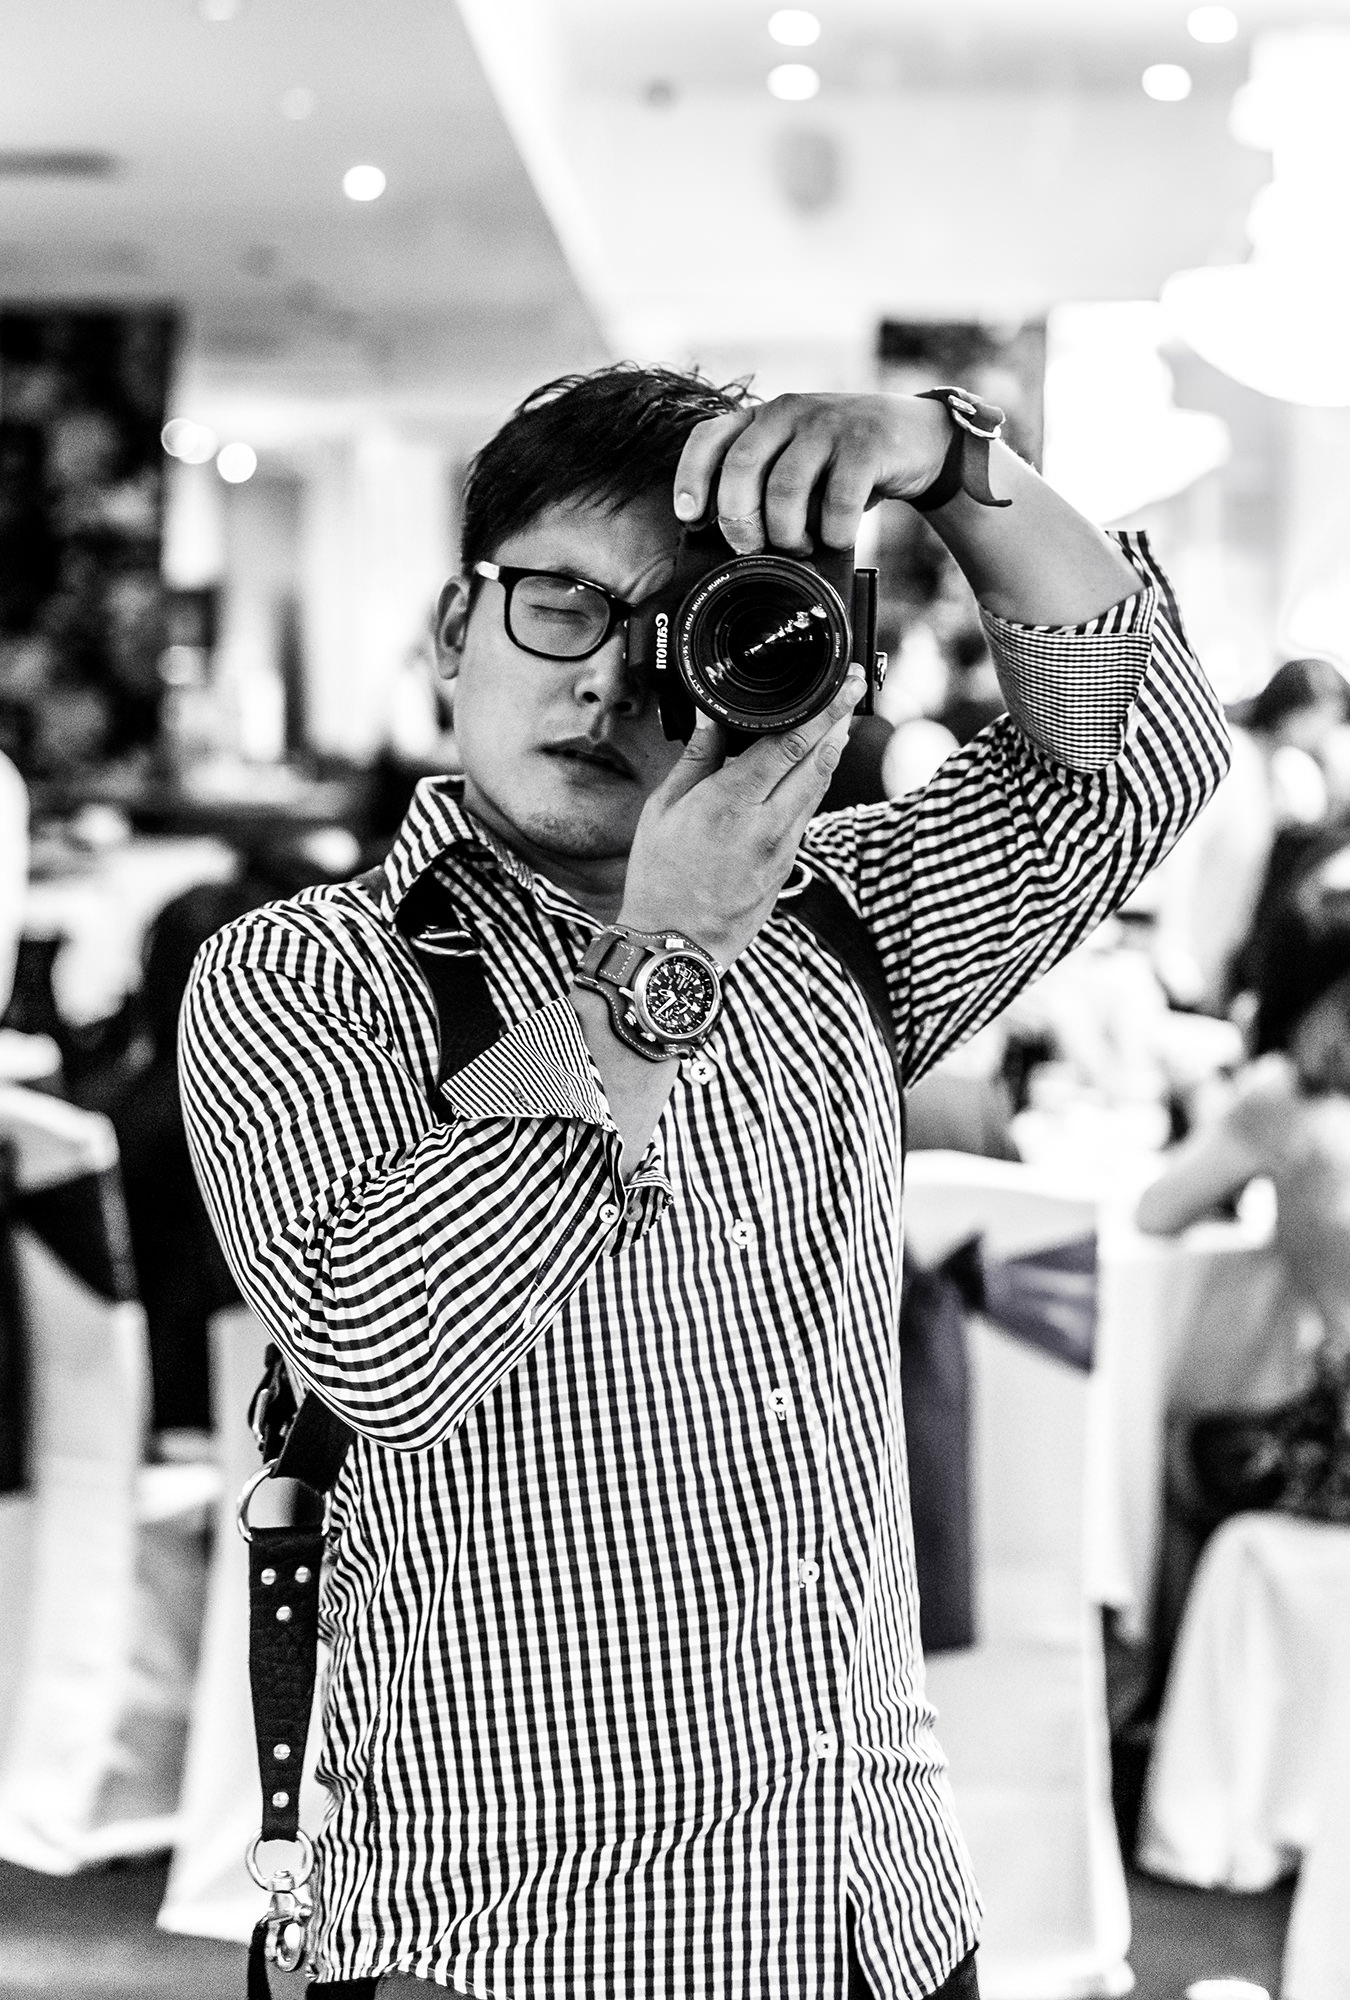 Me in Action (Oliver Kuo)